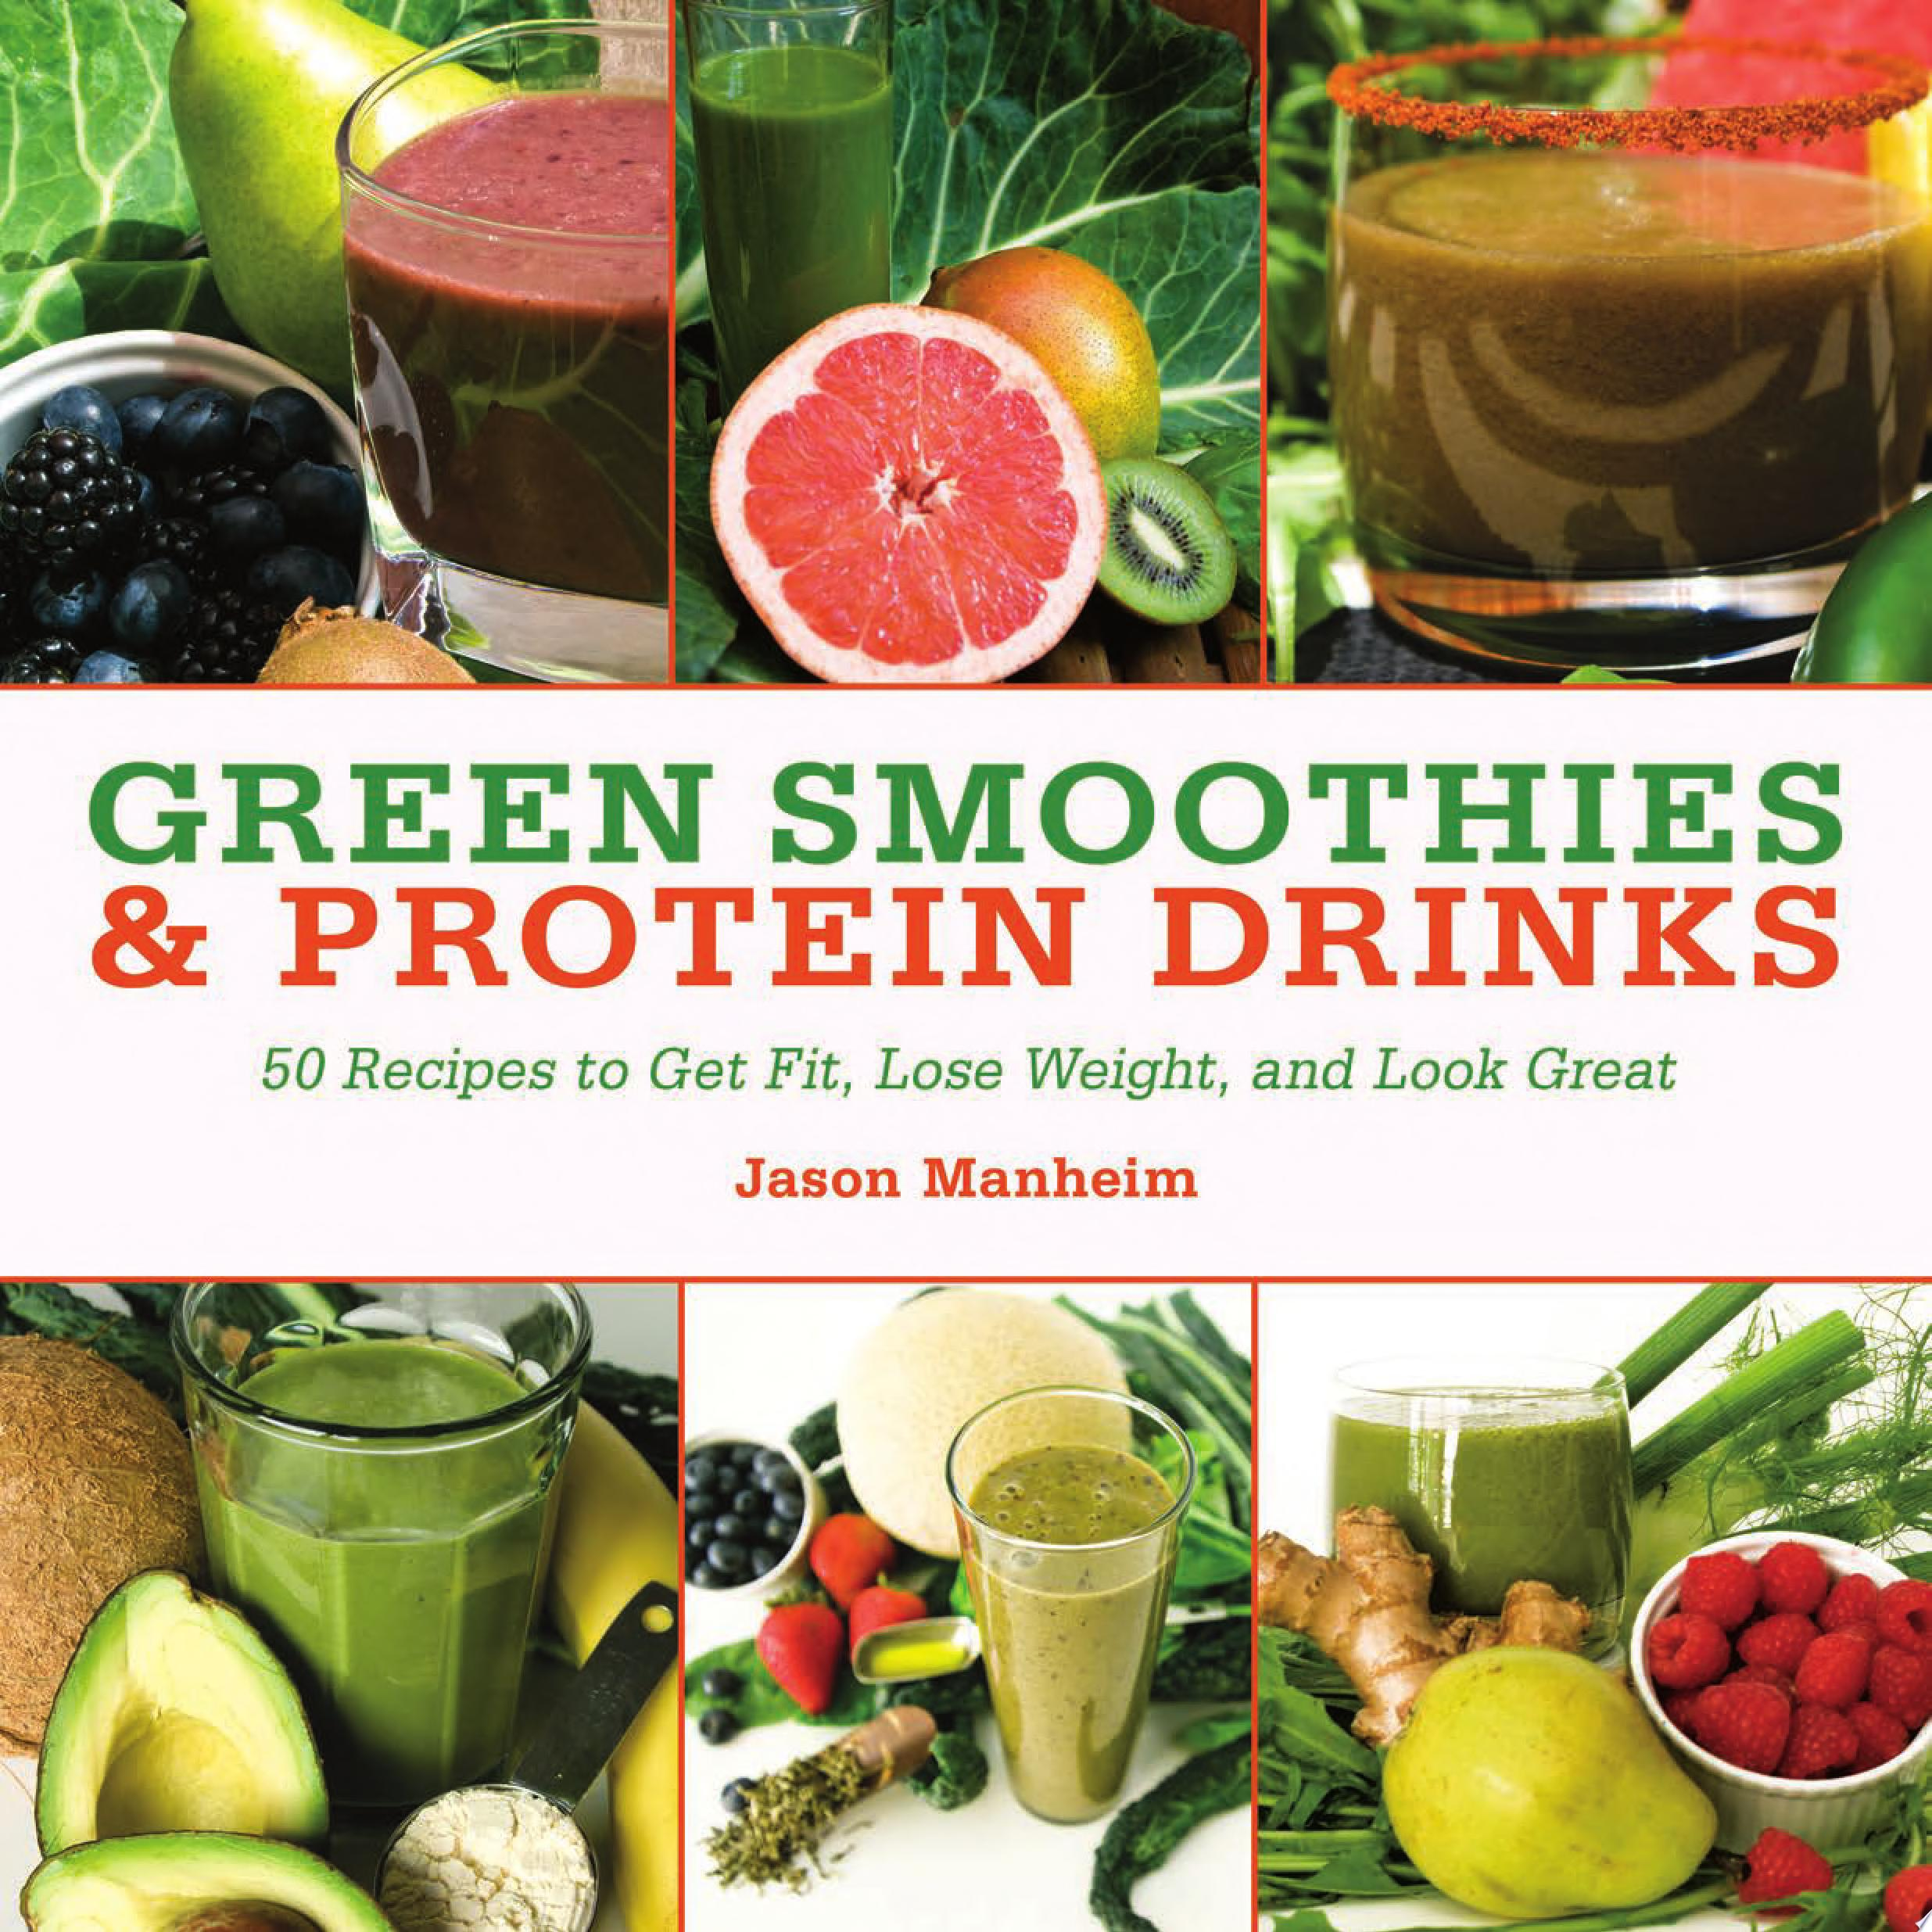 Green Smoothies and Protein Drinks